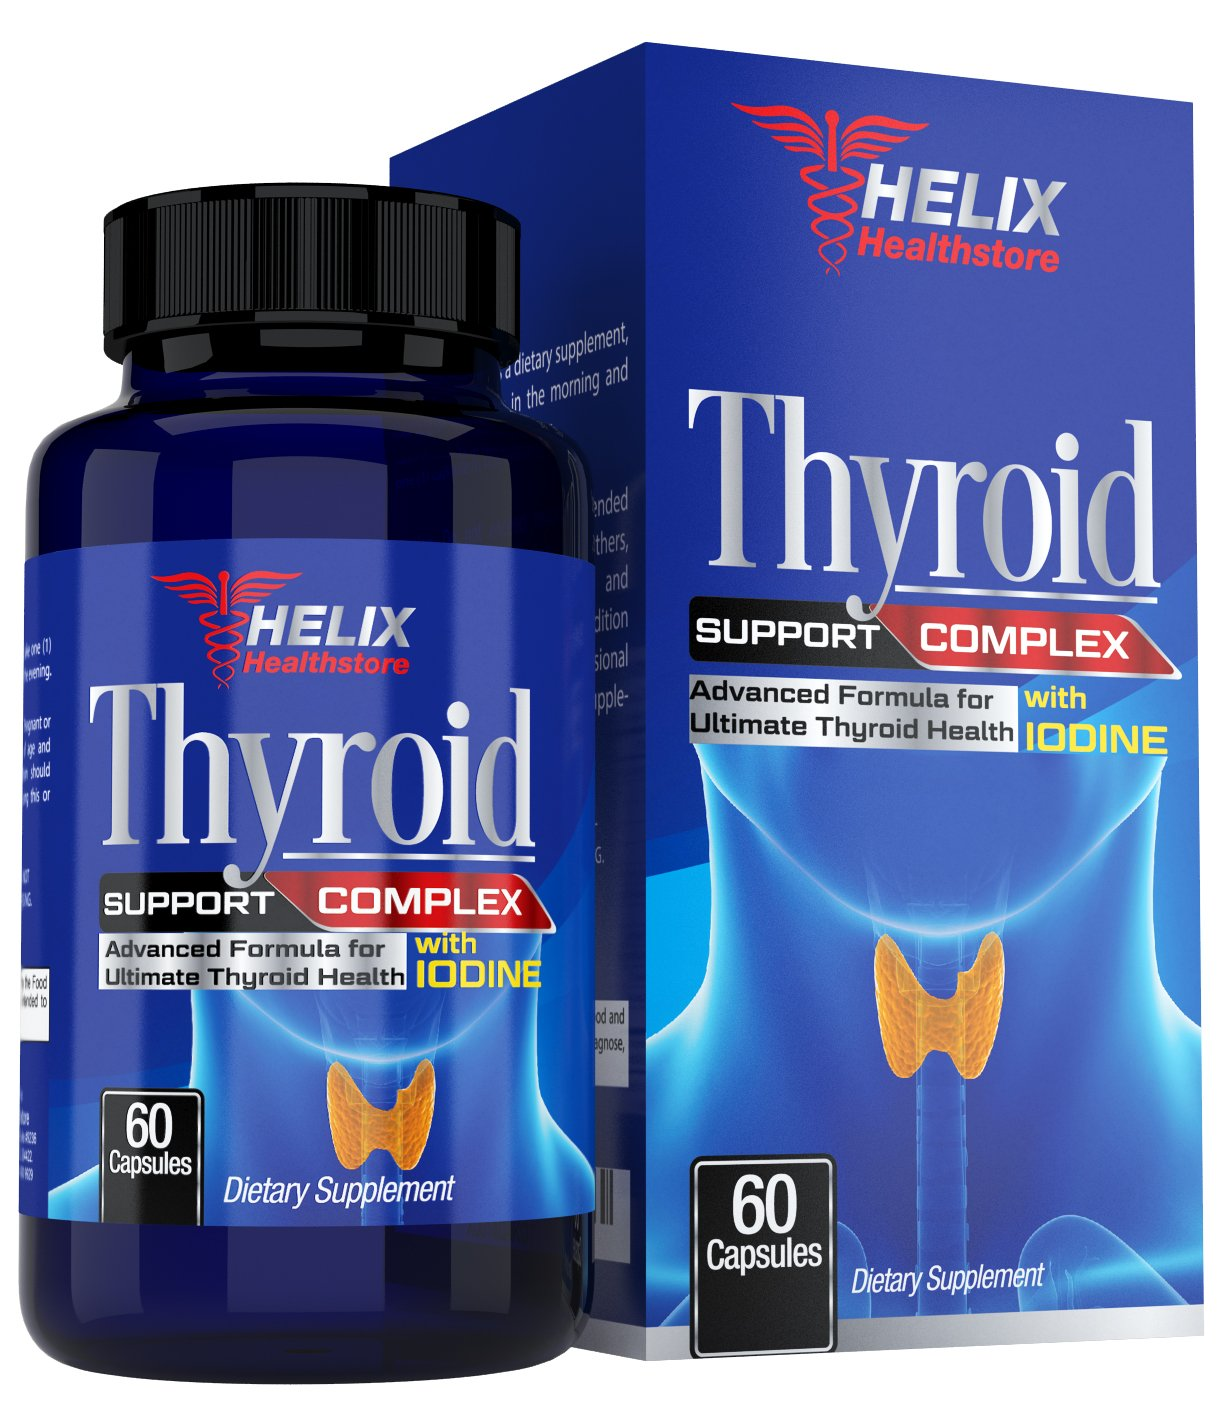 Vitamins with iodine for the thyroid gland